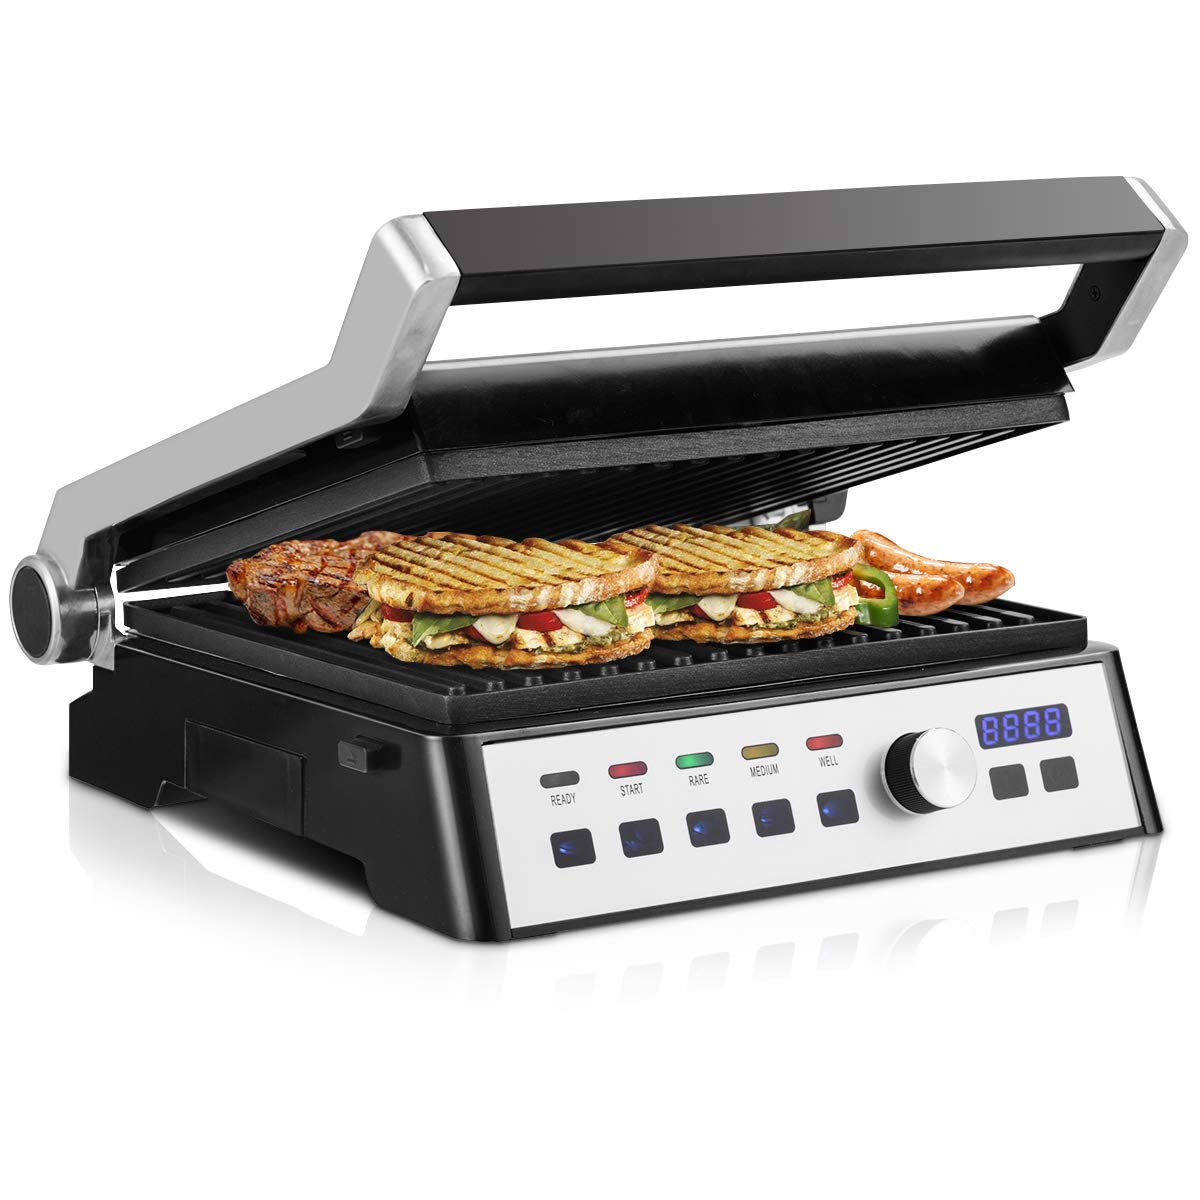 COSTWAY 1500W Smokeless Electric Grill Indoor Grill with Adjustable Temperature and Positions, Non-stick Cooking Surface, Panini Press Sandwich Maker Grill Griddle with Removable Plate & LCD Touch Display